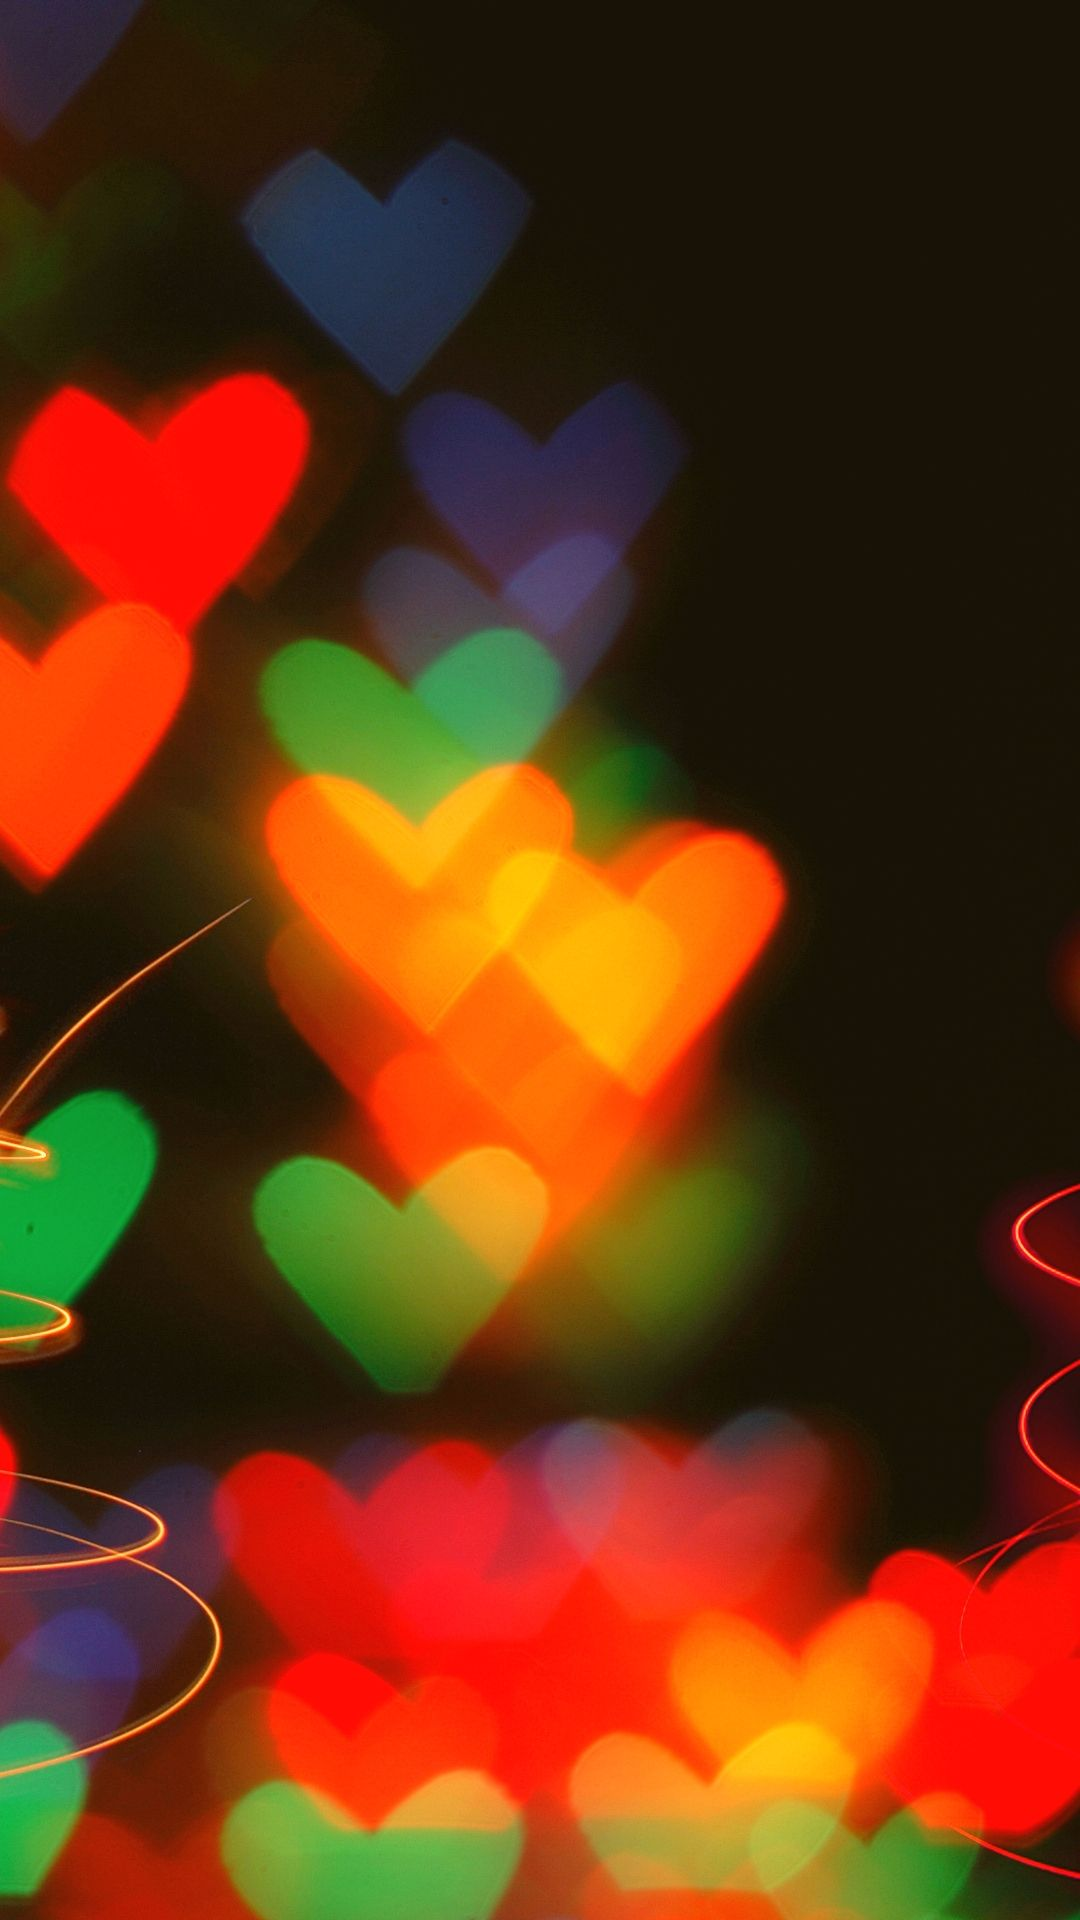 Creative Hearts Love Hd Wallpapers 1080x1920 Abstract Iphone Wallpaper Wallpaper Love Wallpaper Download